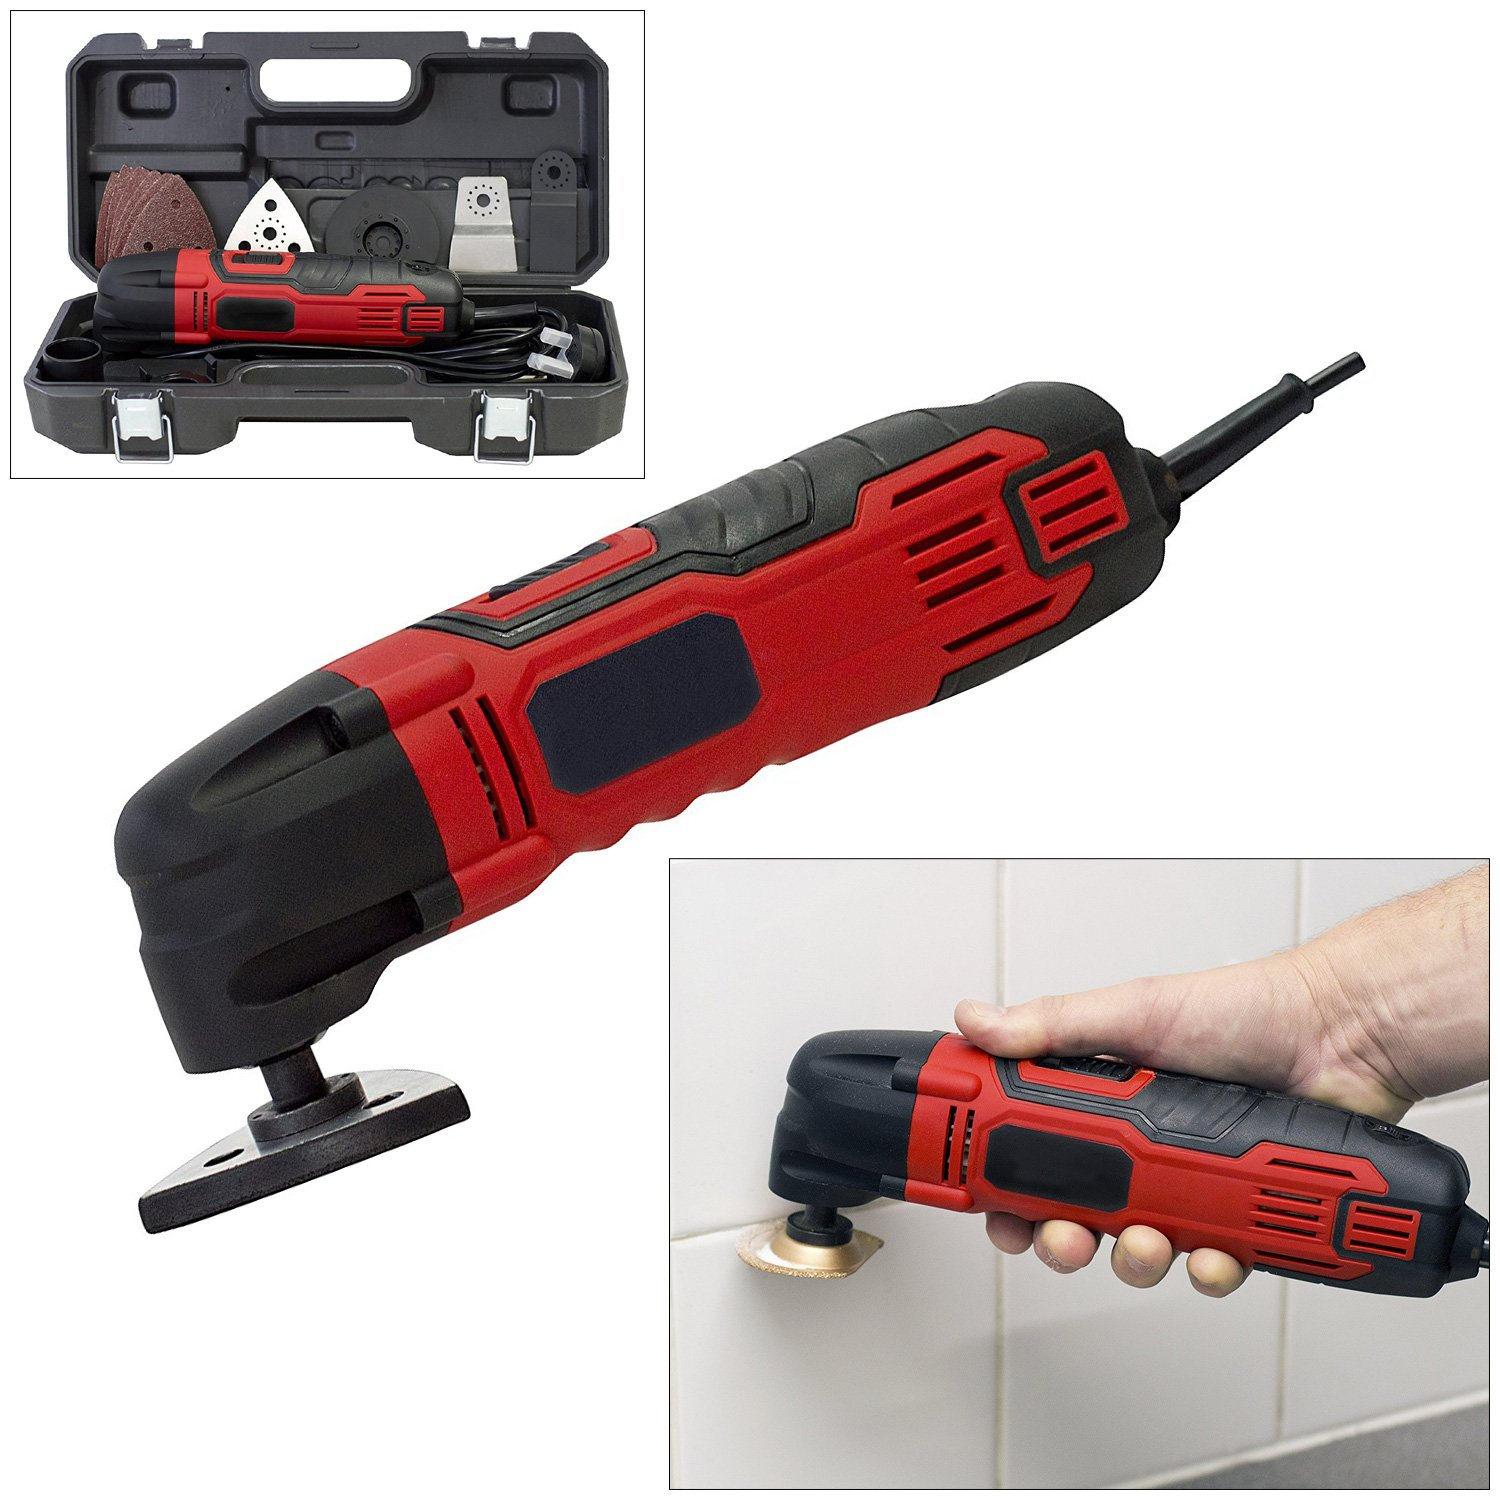 280W Oscillating Multi Function Power Tool with Accessories